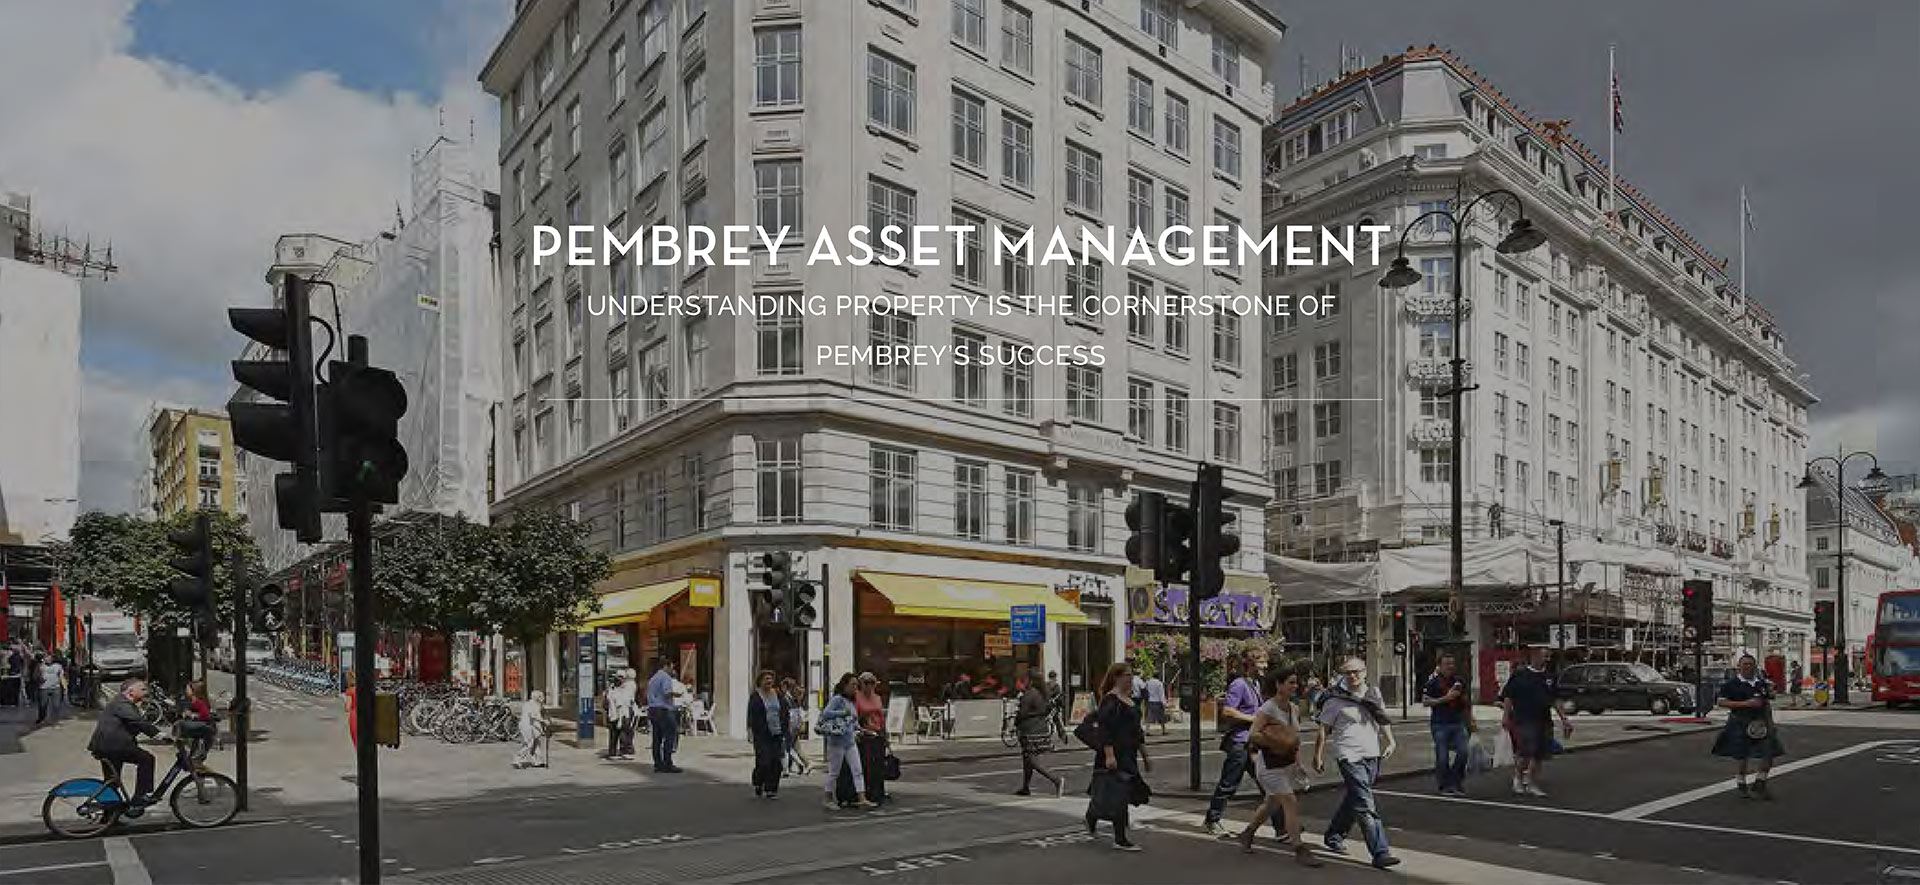 Commercial property assets